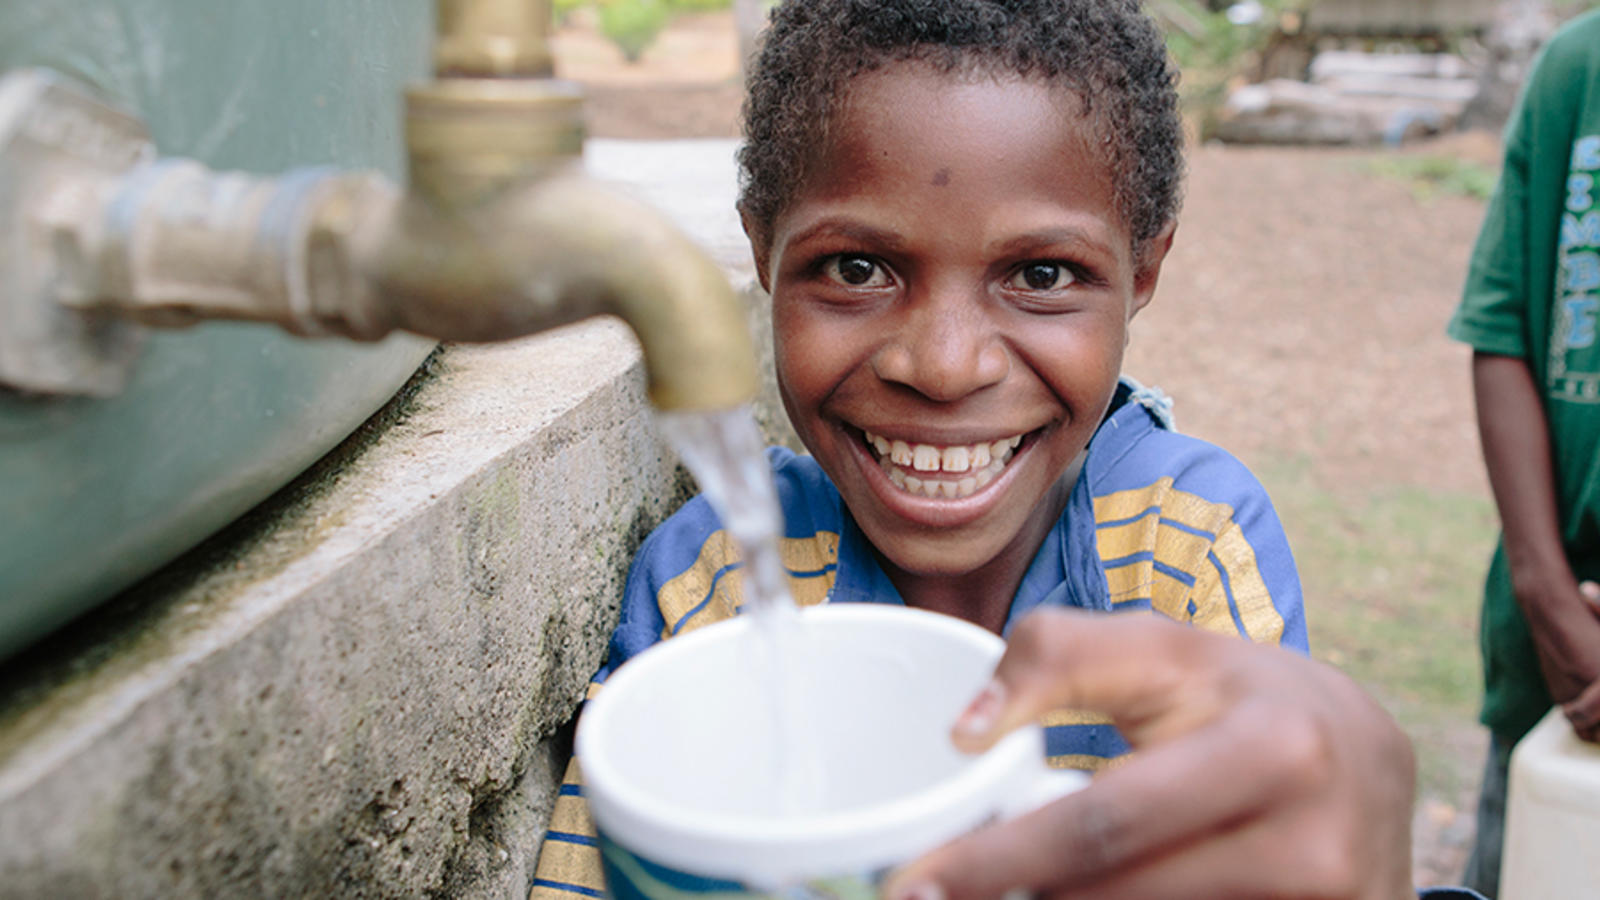 Papua New Guinean boy filling cup with water from a tap.